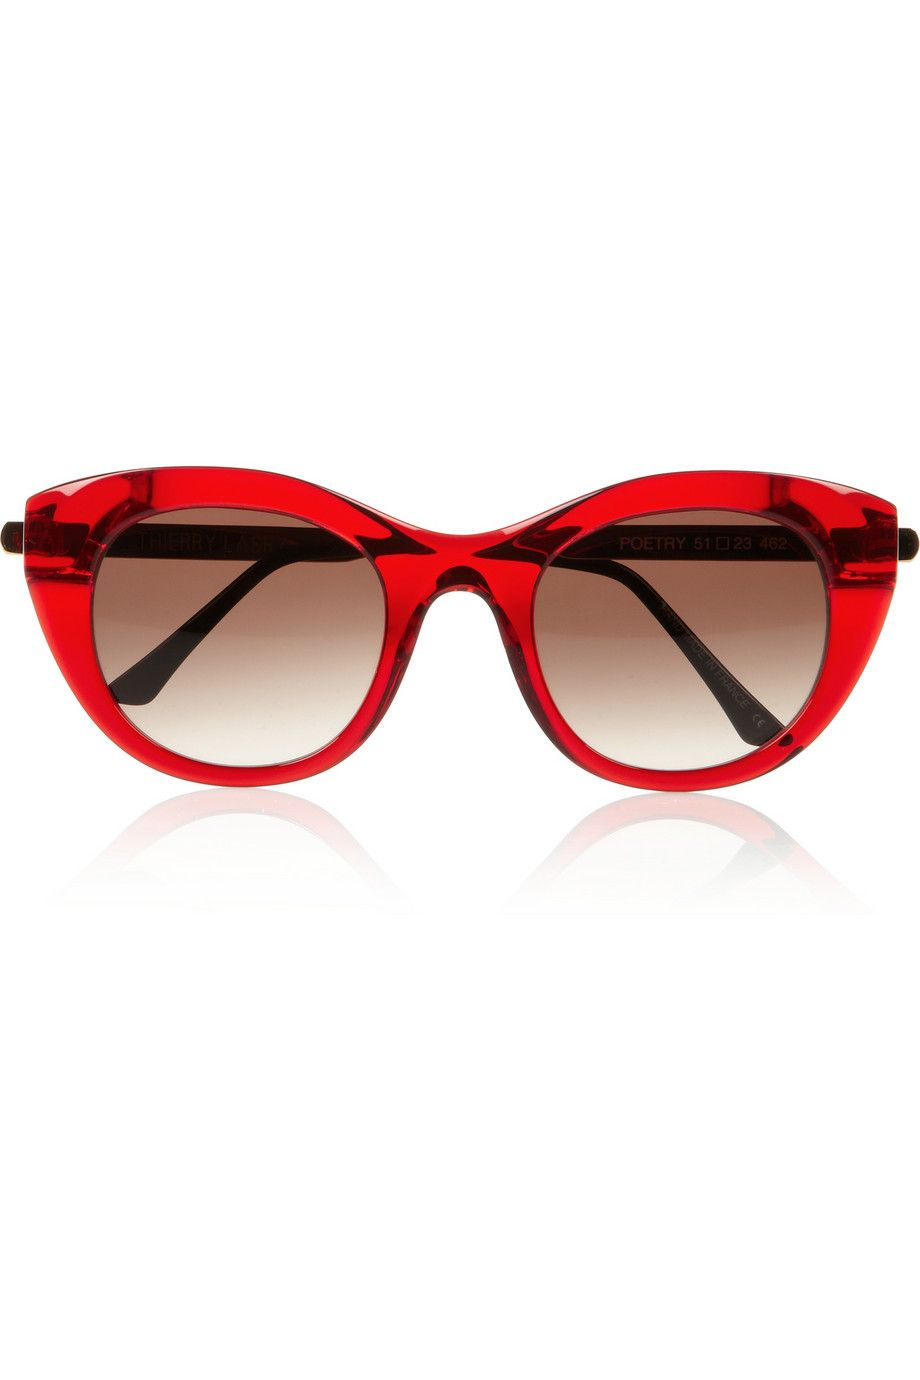 8d8792868305d Thierry Lasry Poetry cat eye acetate sunglasses - love the cherry red  style